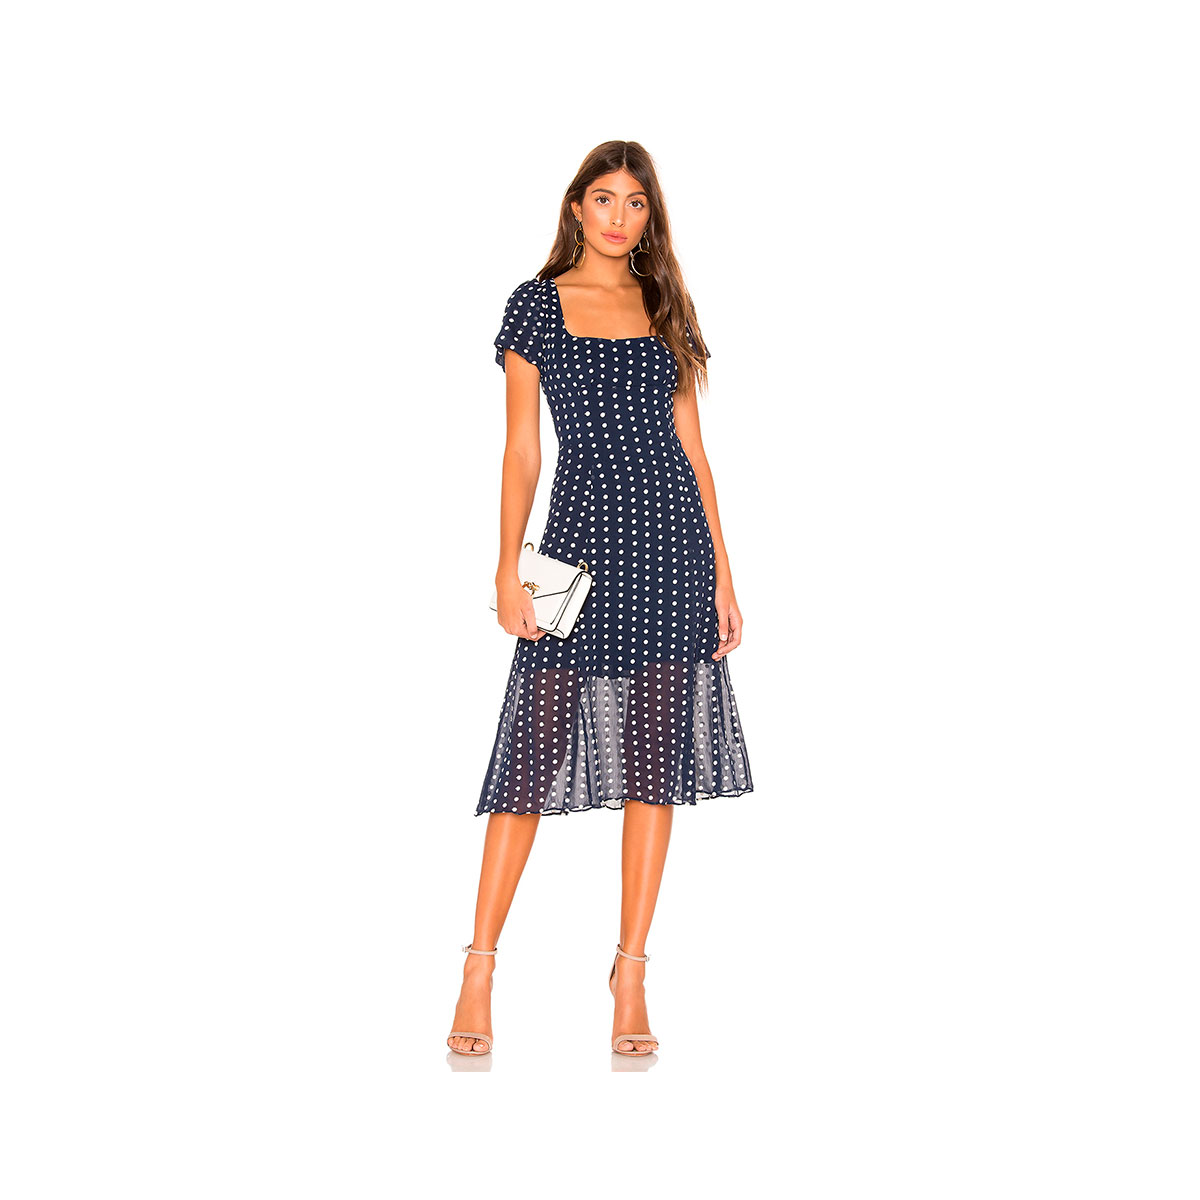 f3306c3135 7 Pretty Wedding Guest Dresses | Real Simple